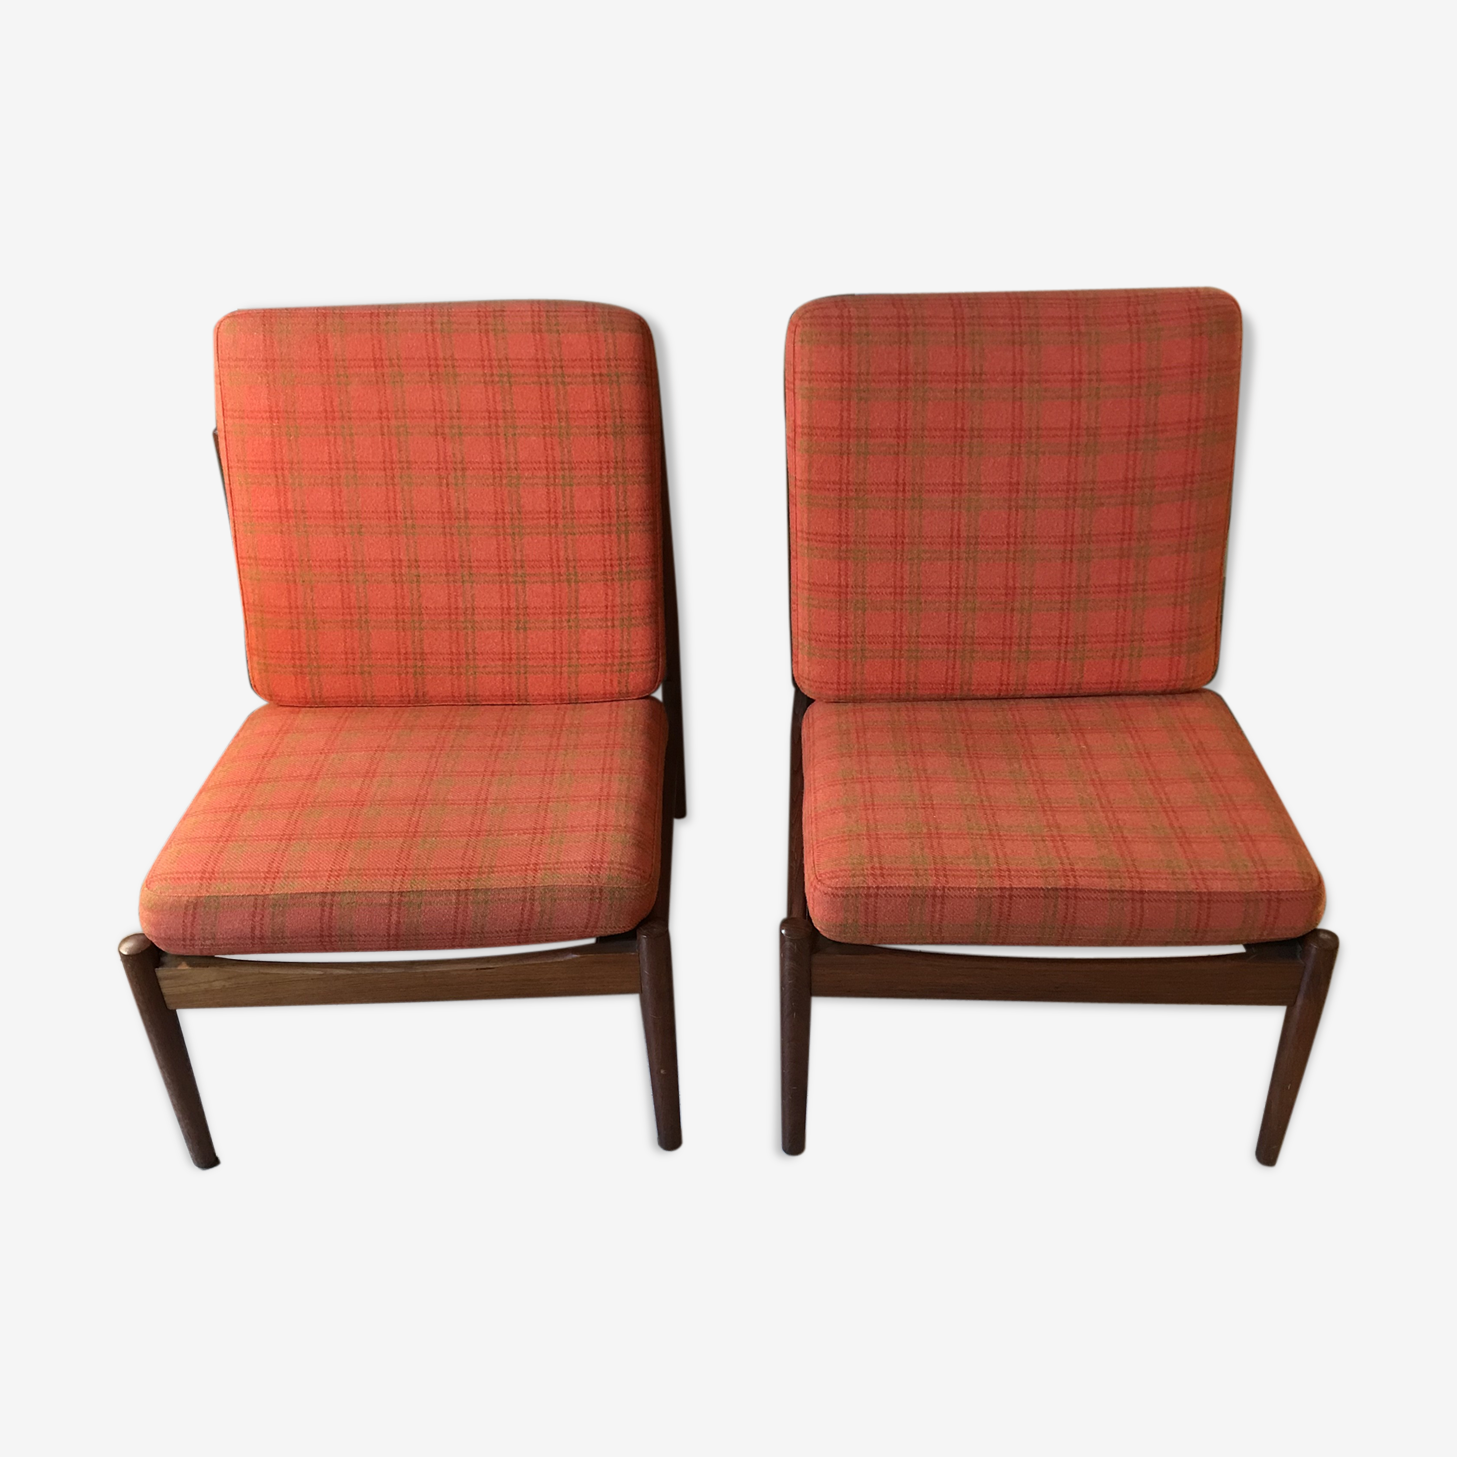 Danish fireside chairs by Arne Vodder for Glostrup 1960